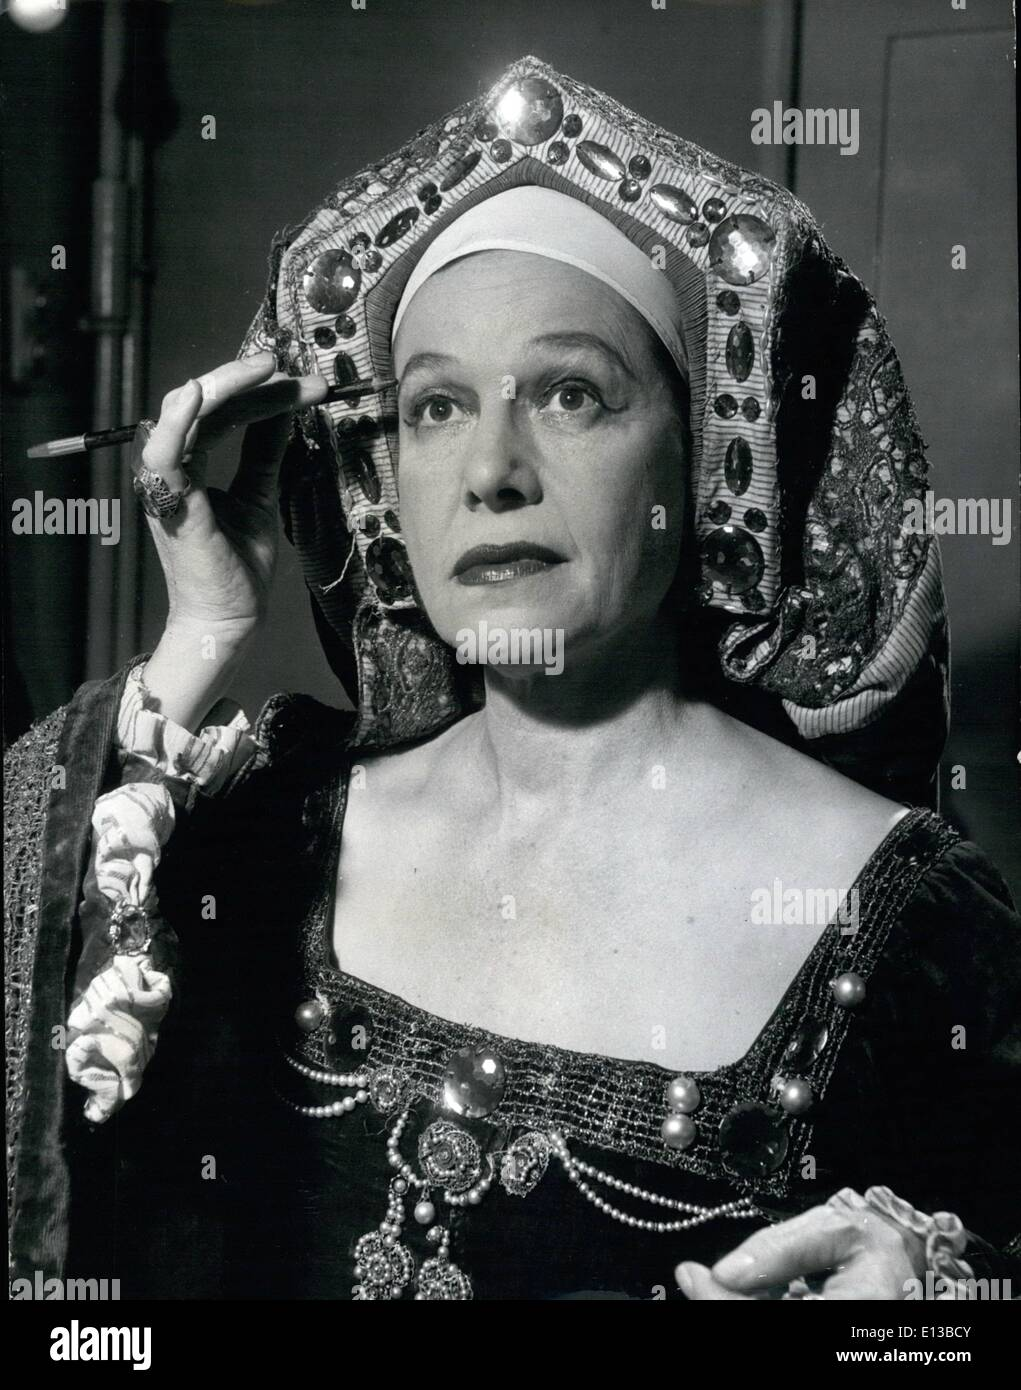 Feb. 29, 2012 - Cornelia Otis Skinner as Katherine of Aragon, one of a vast Repertoire of Characterizations used in her One woman show. Cornelia Otis Skinner - a One Woman Show from America: Touring the provinces and having a great success is American entertainer Cornelia Otis Skinner. At 51 she says she continues to work ''because she wants to live comfortably..'' and yet she is happily married to a retired New York banker who is one of her greatest admirers. She is famous for her rapid changes and many characterizations - Stock Image